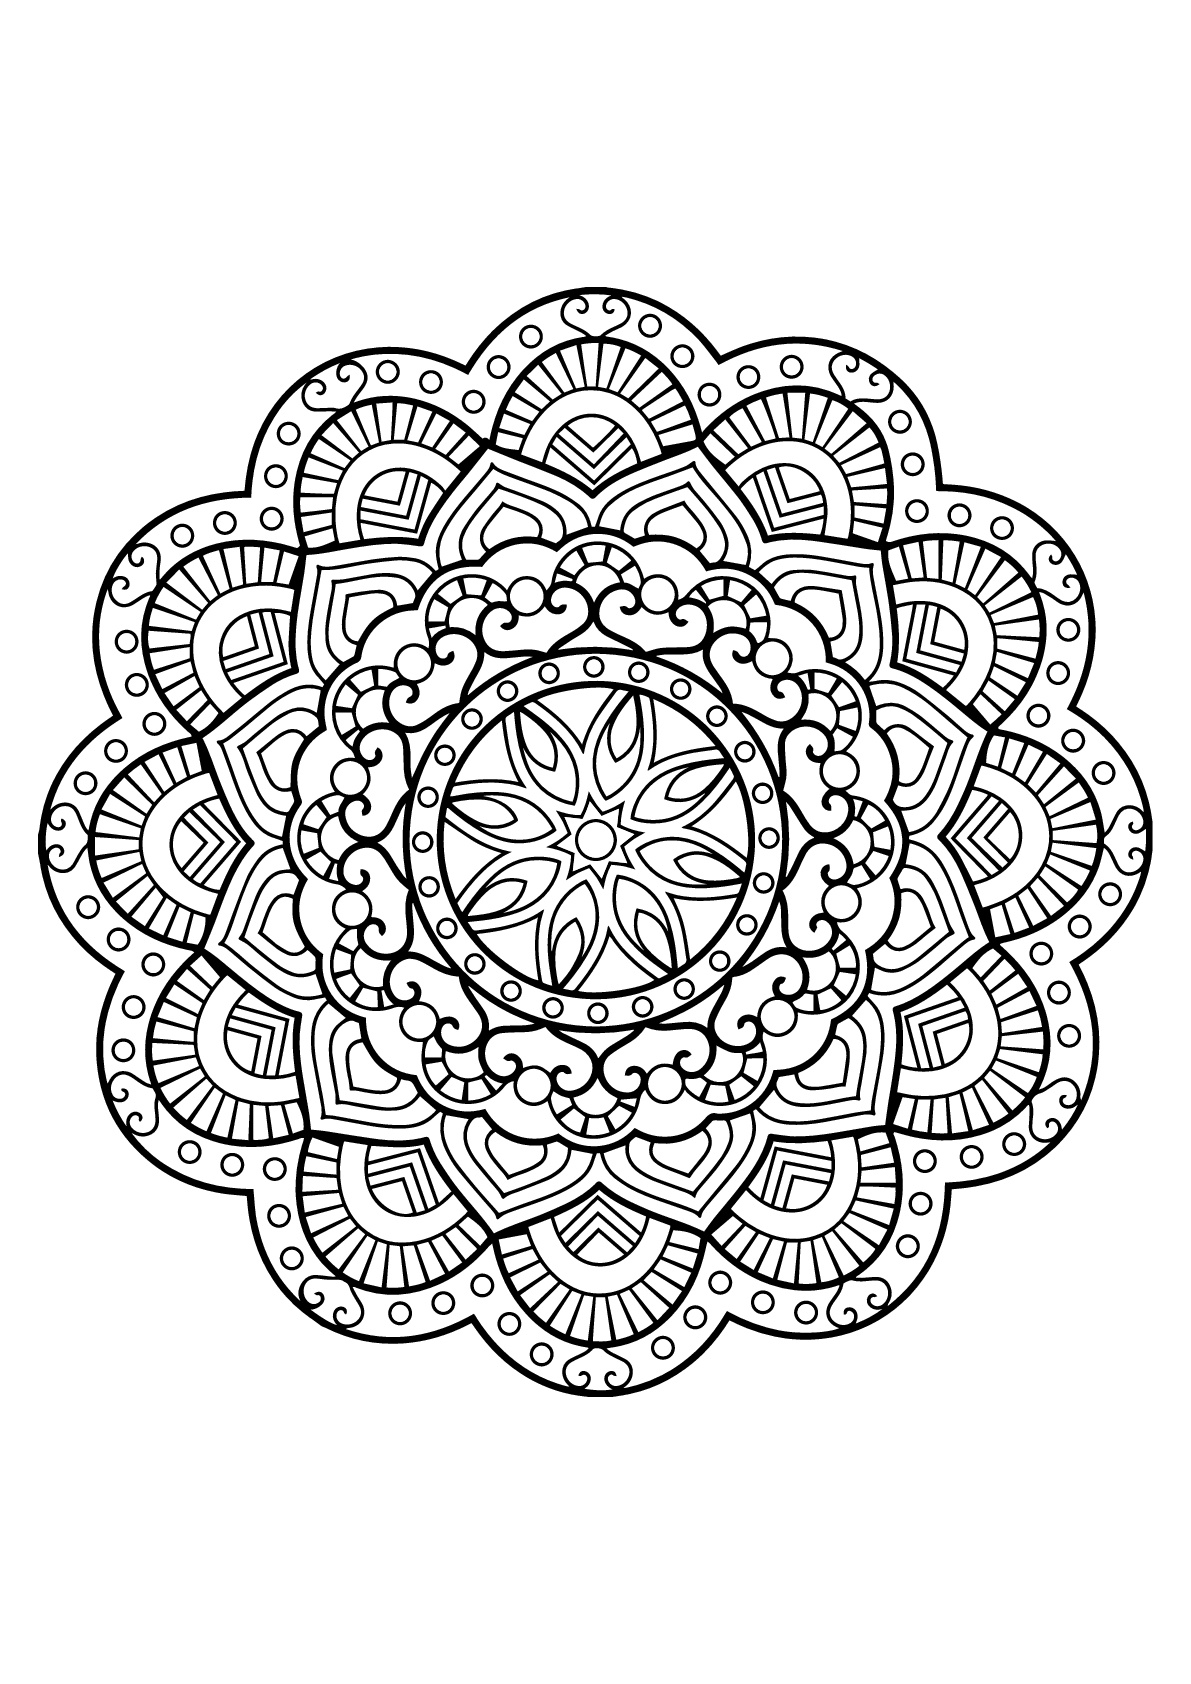 Mandala from free coloring books for adults 26 - M&alas Adult ...